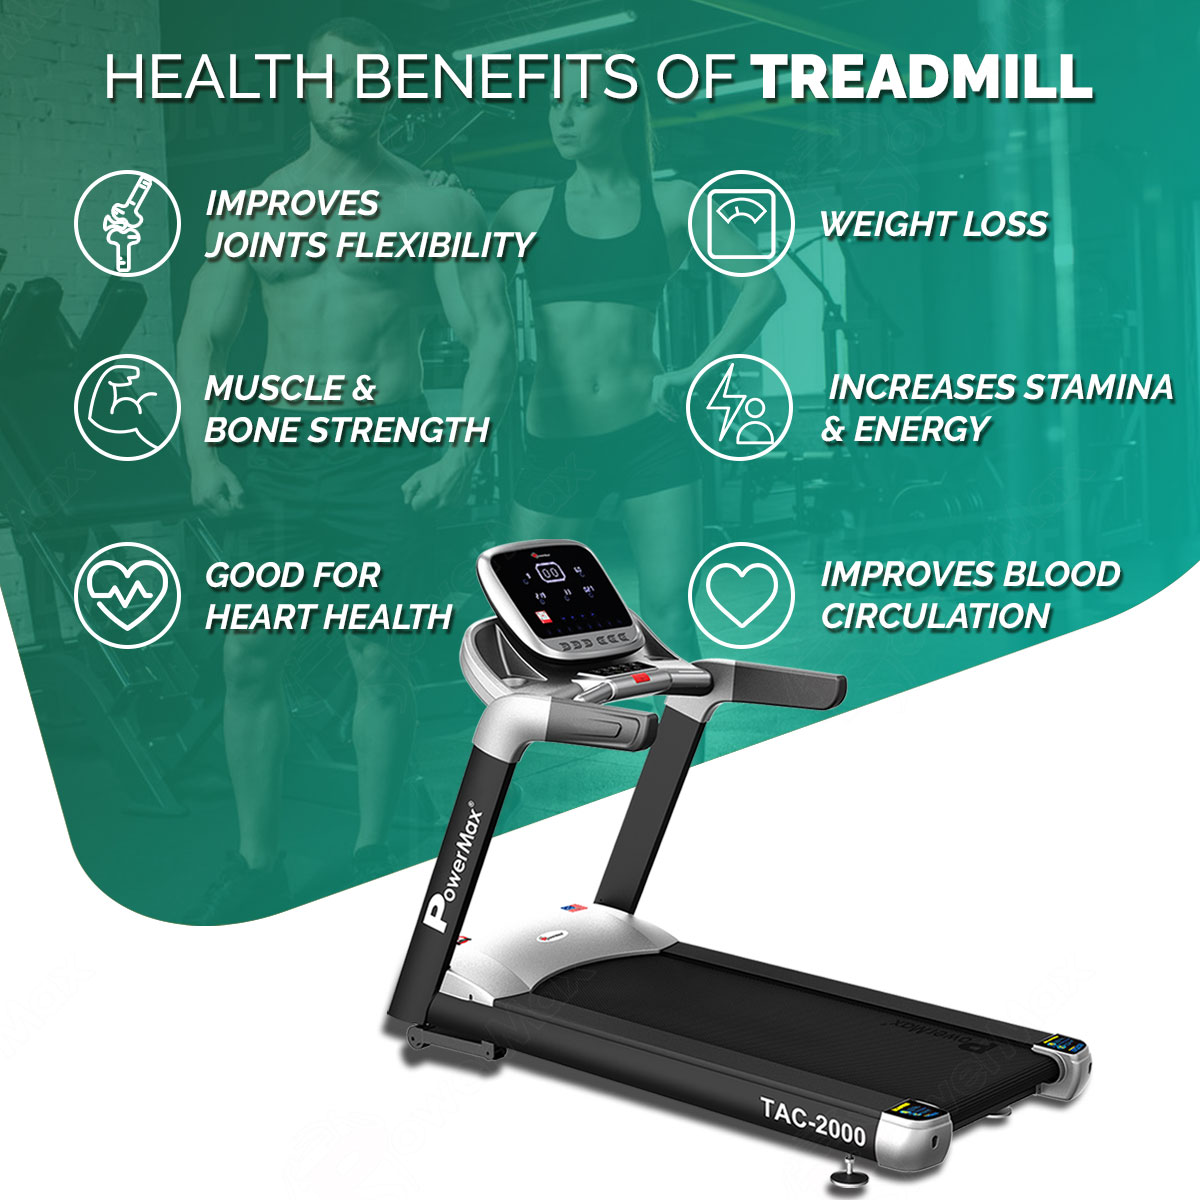 TAC-2000 Commercial Motorized AC Treadmill